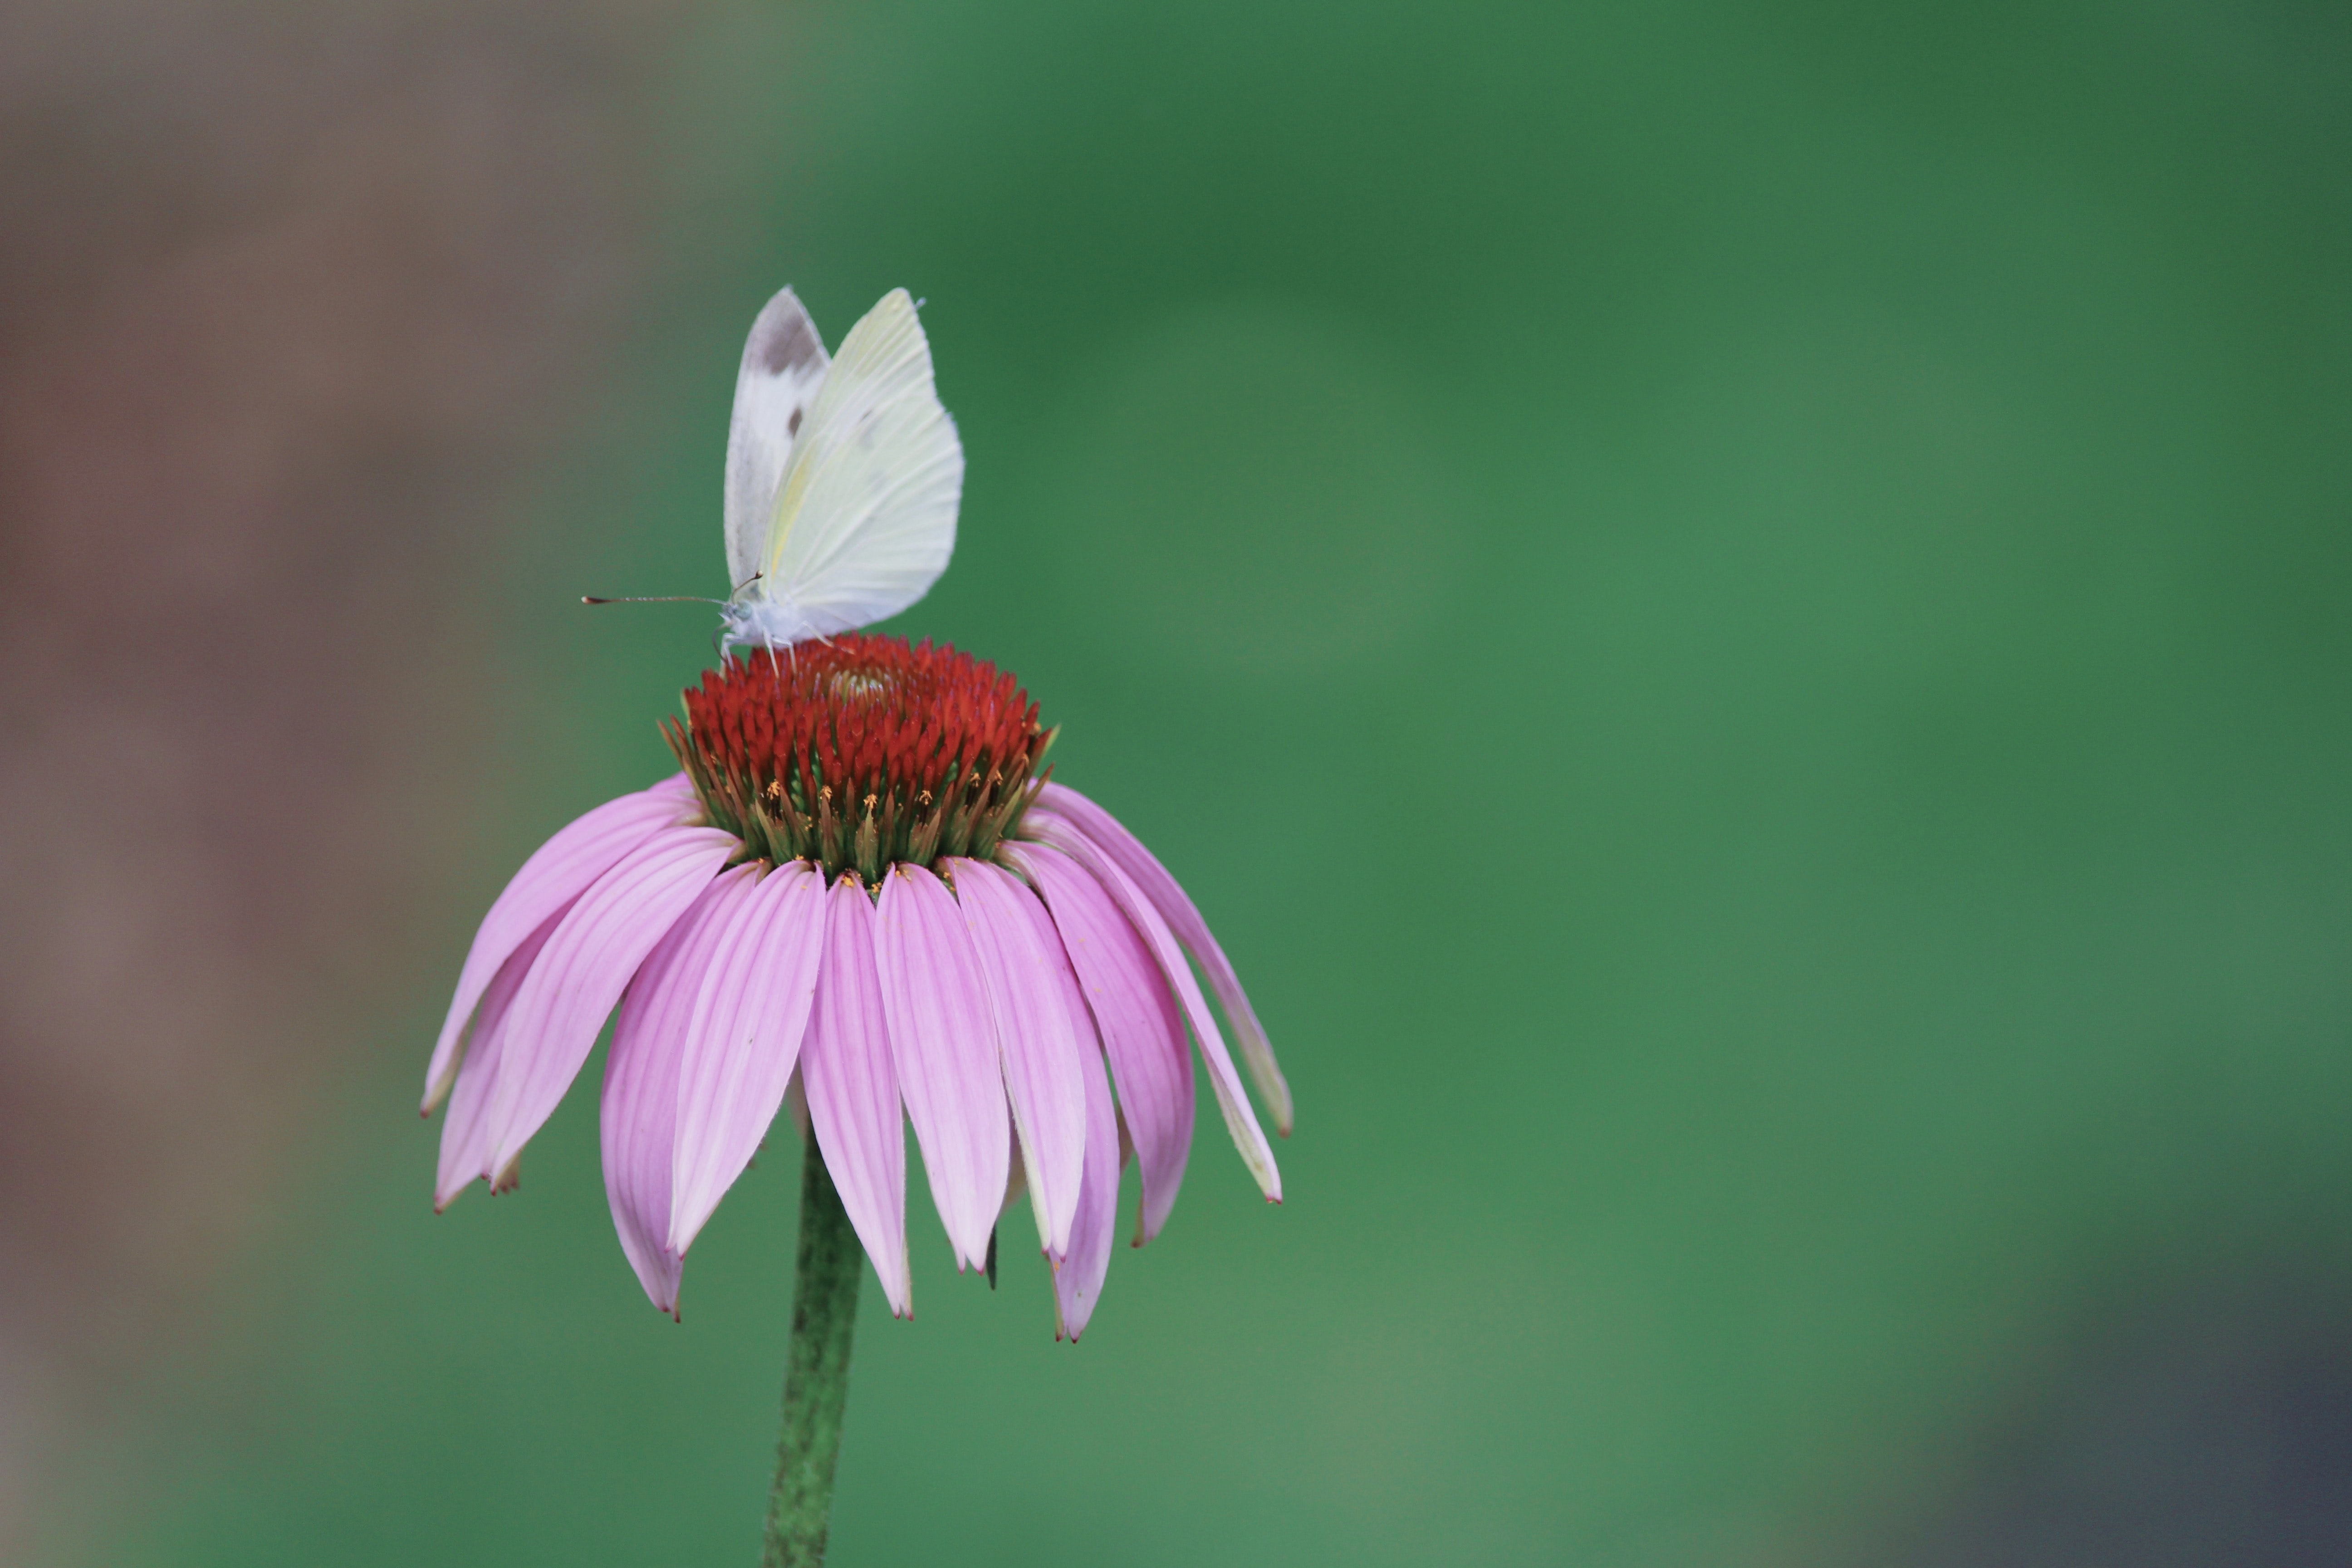 A butterfly on a red flower with pink petals.